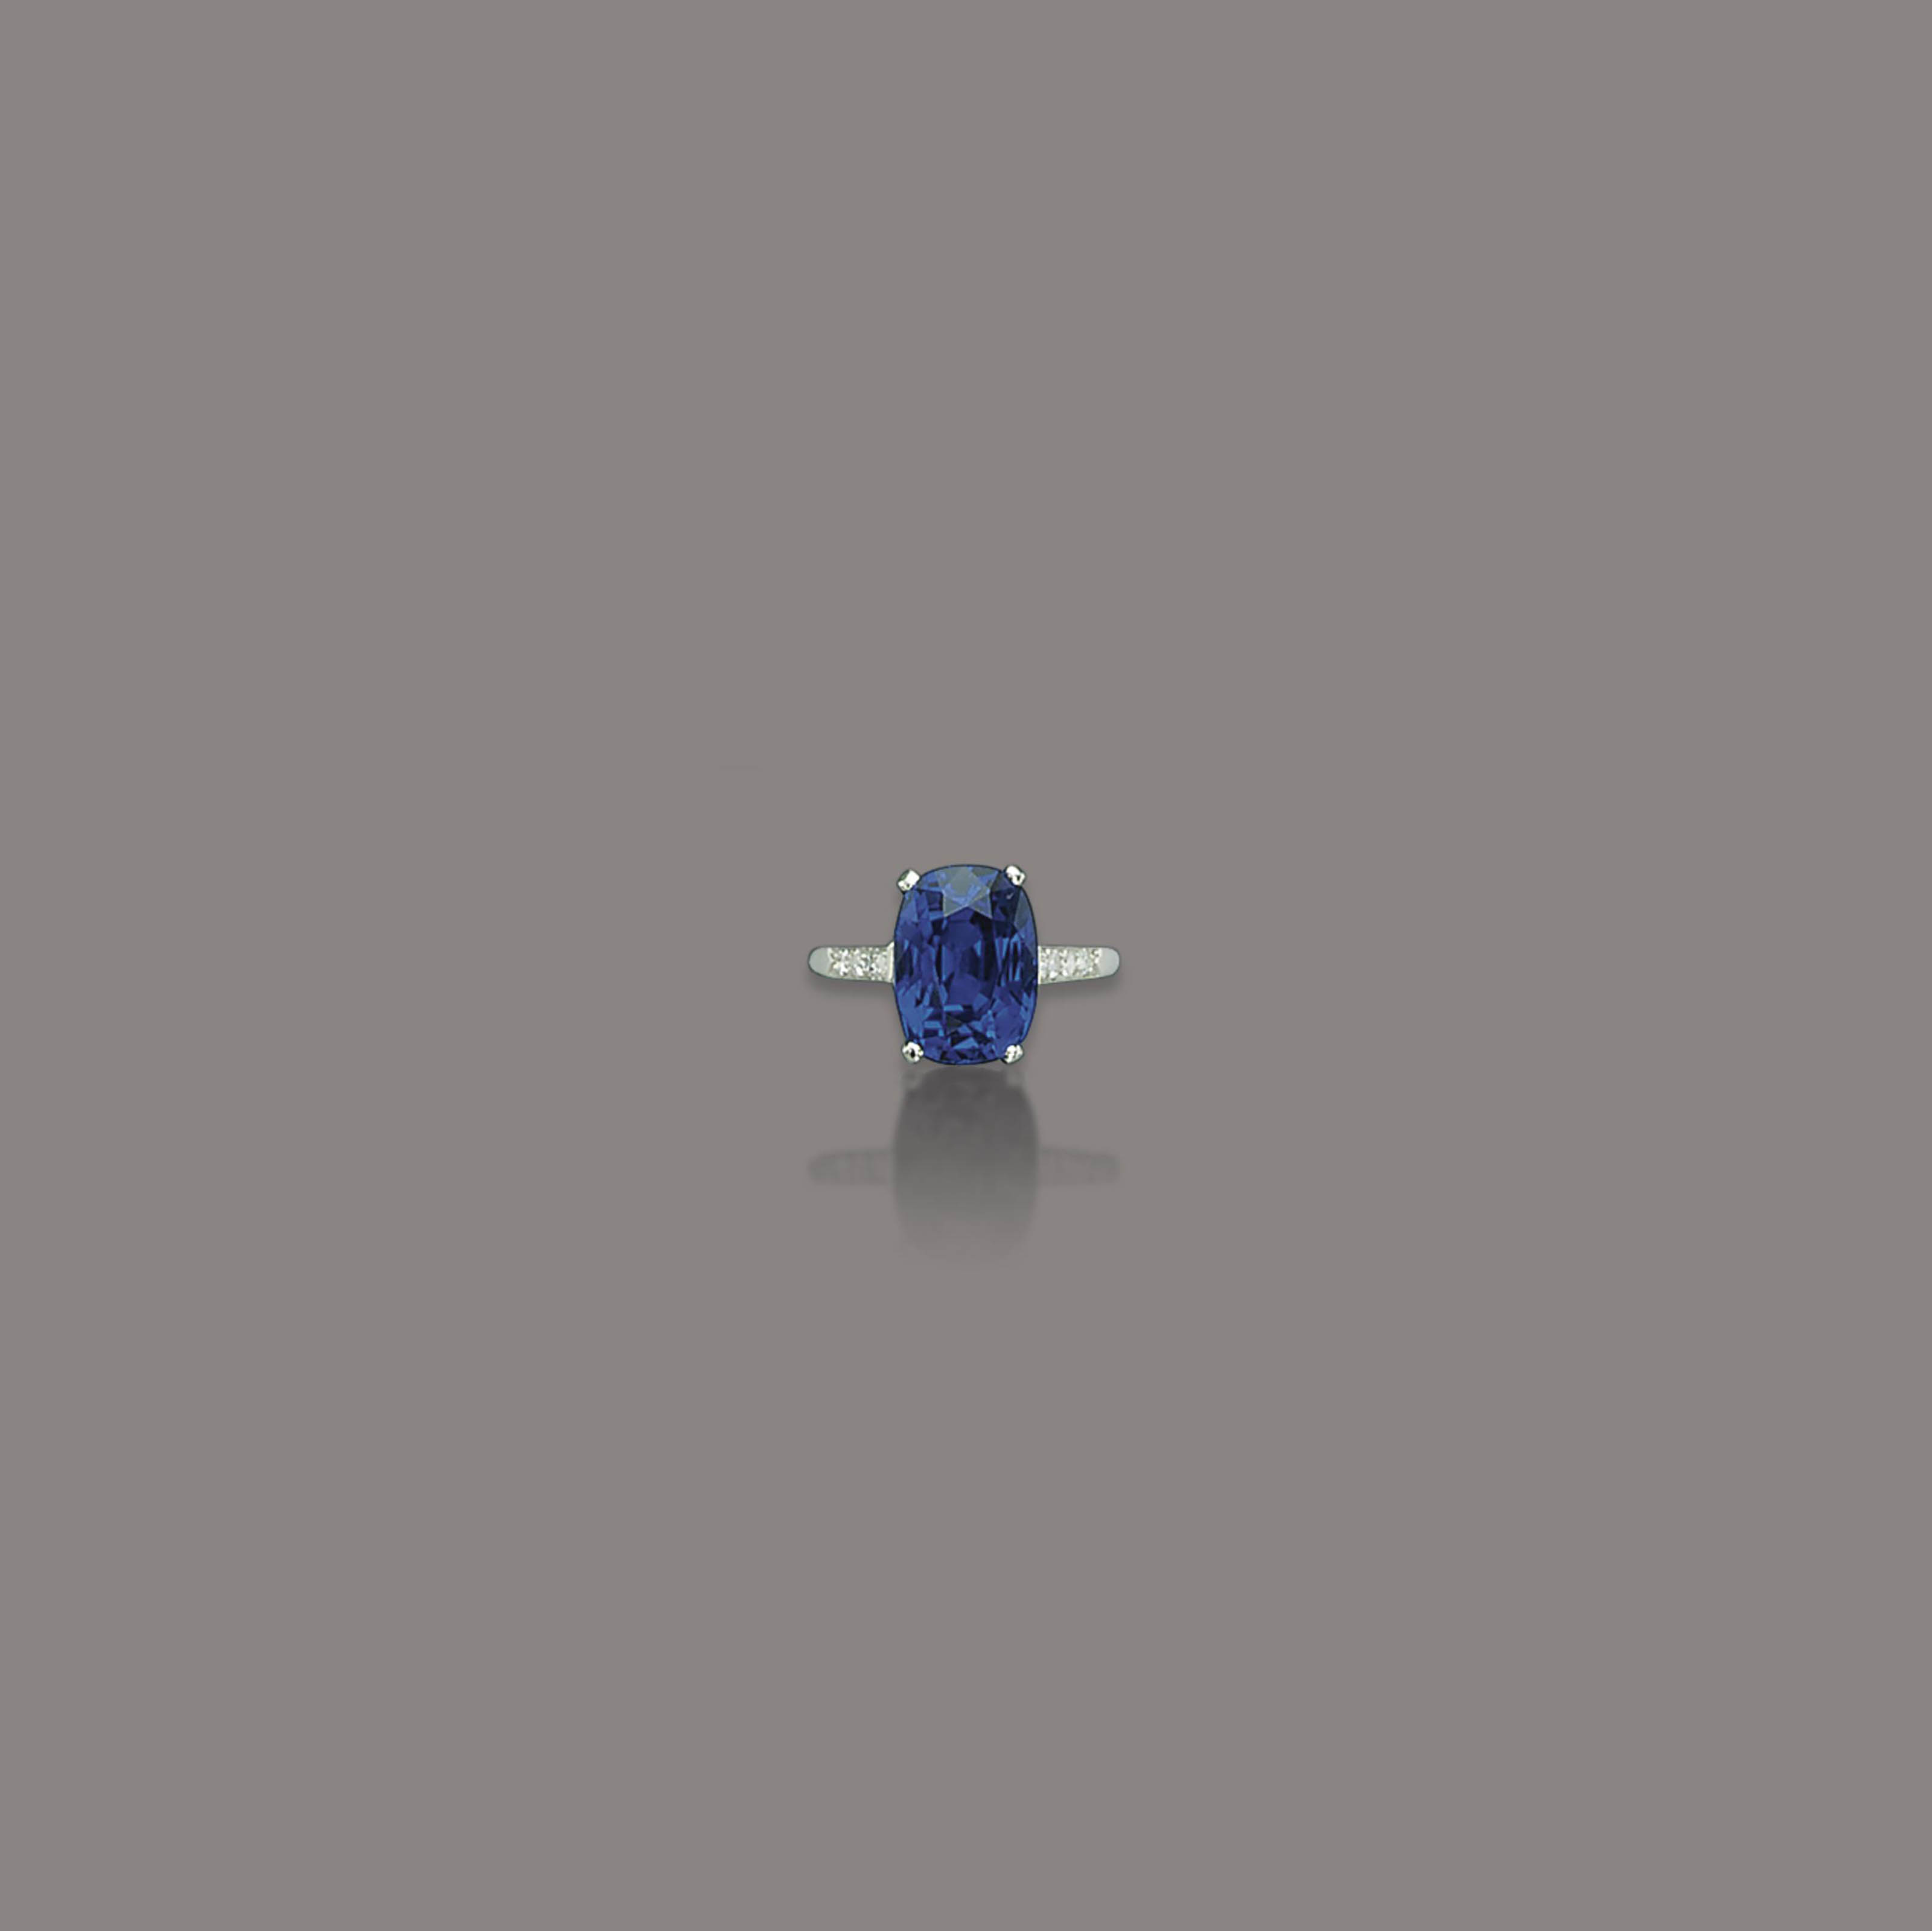 A SAPPHIRE AND DIAMOND RING, BY CARTIER